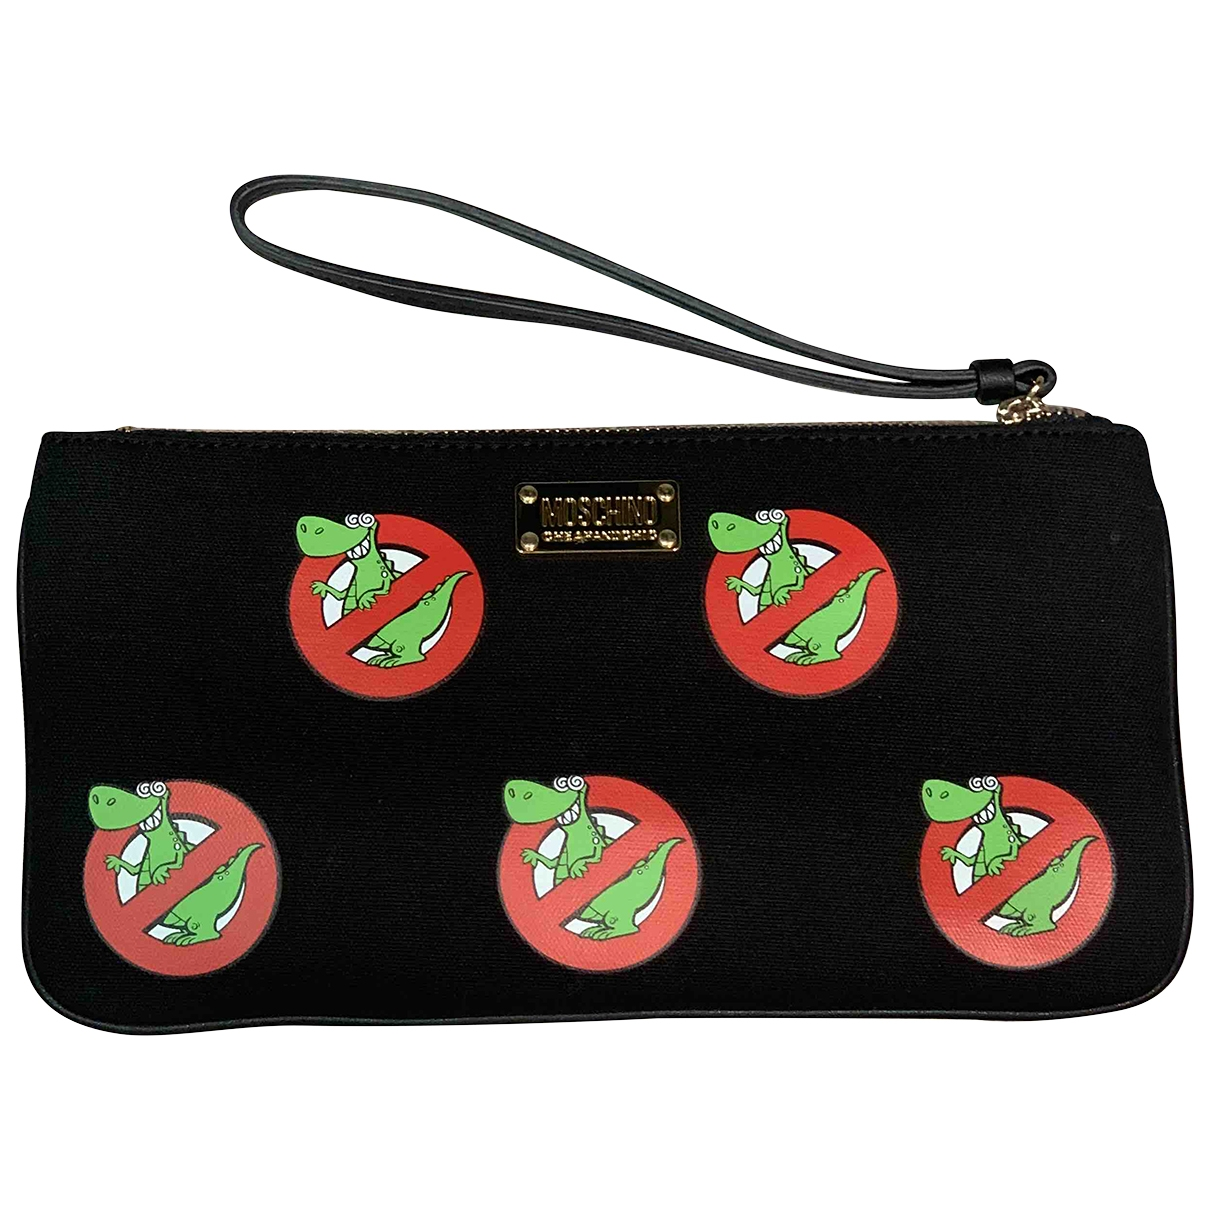 Moschino Cheap And Chic \N Black Cotton Clutch bag for Women \N